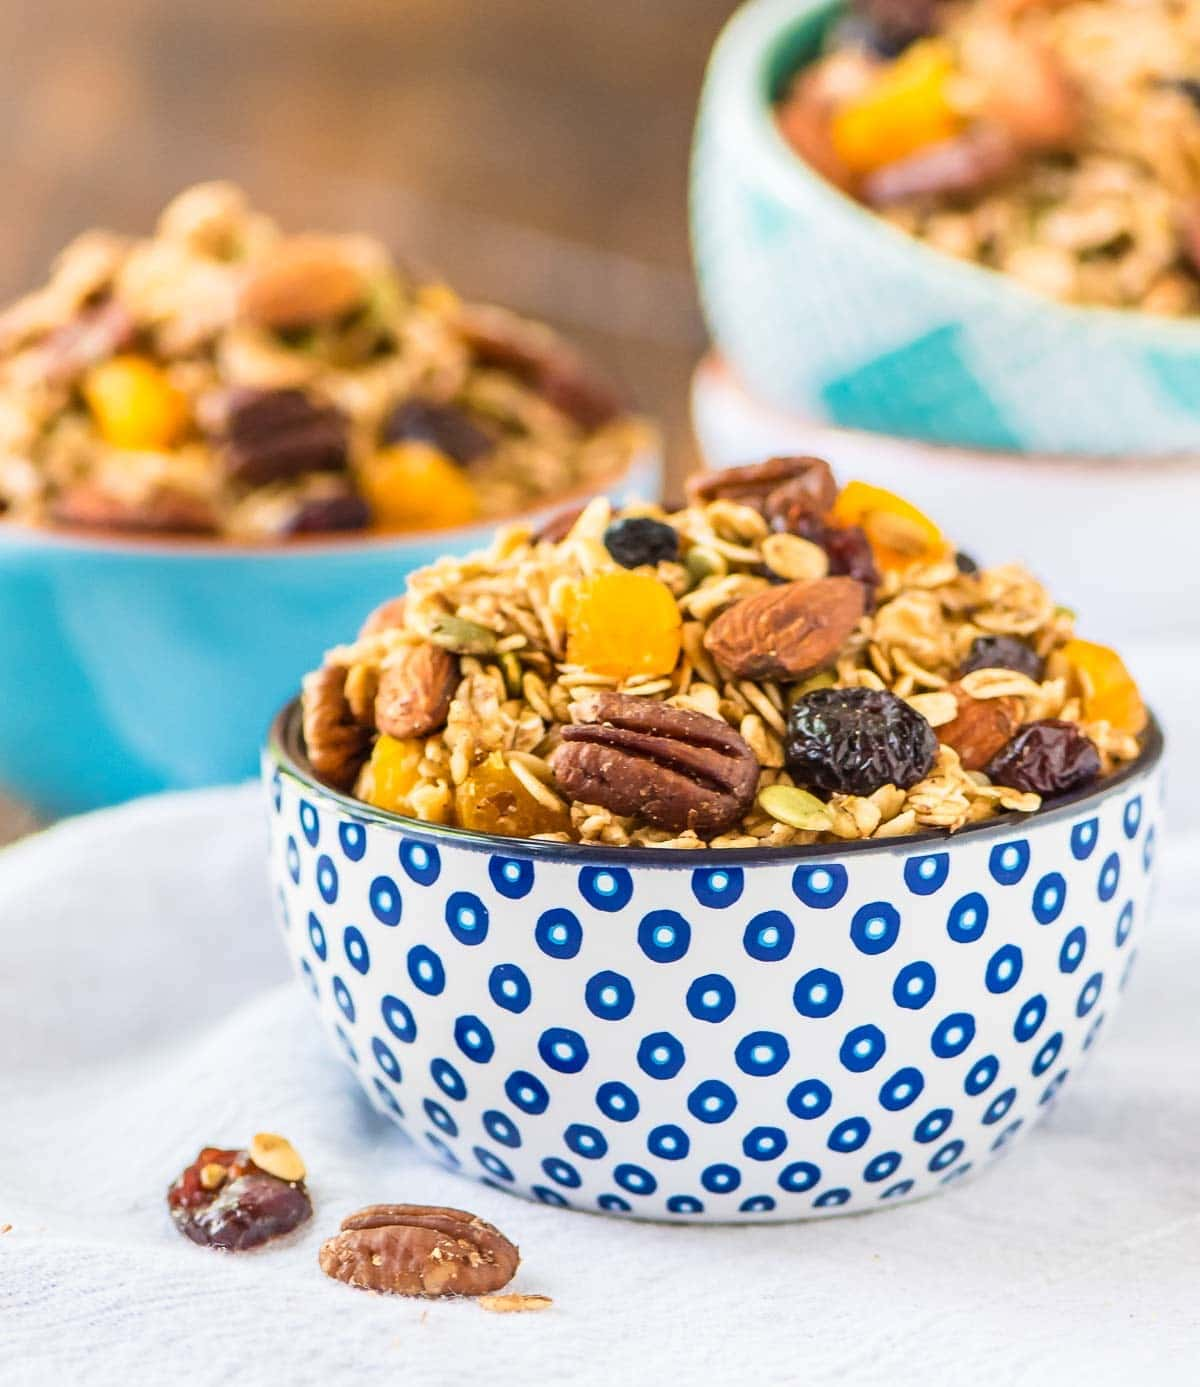 Crock Pot Granola recipe — The easiest way to make granola! Recipe can be customized to all of your favorite granola mix-ins. Salty, sweet, vegan, dairy-free, gluten-free, and DELICIOUS! Perfect for healthy breakfasts and quick snacks. @wellplated